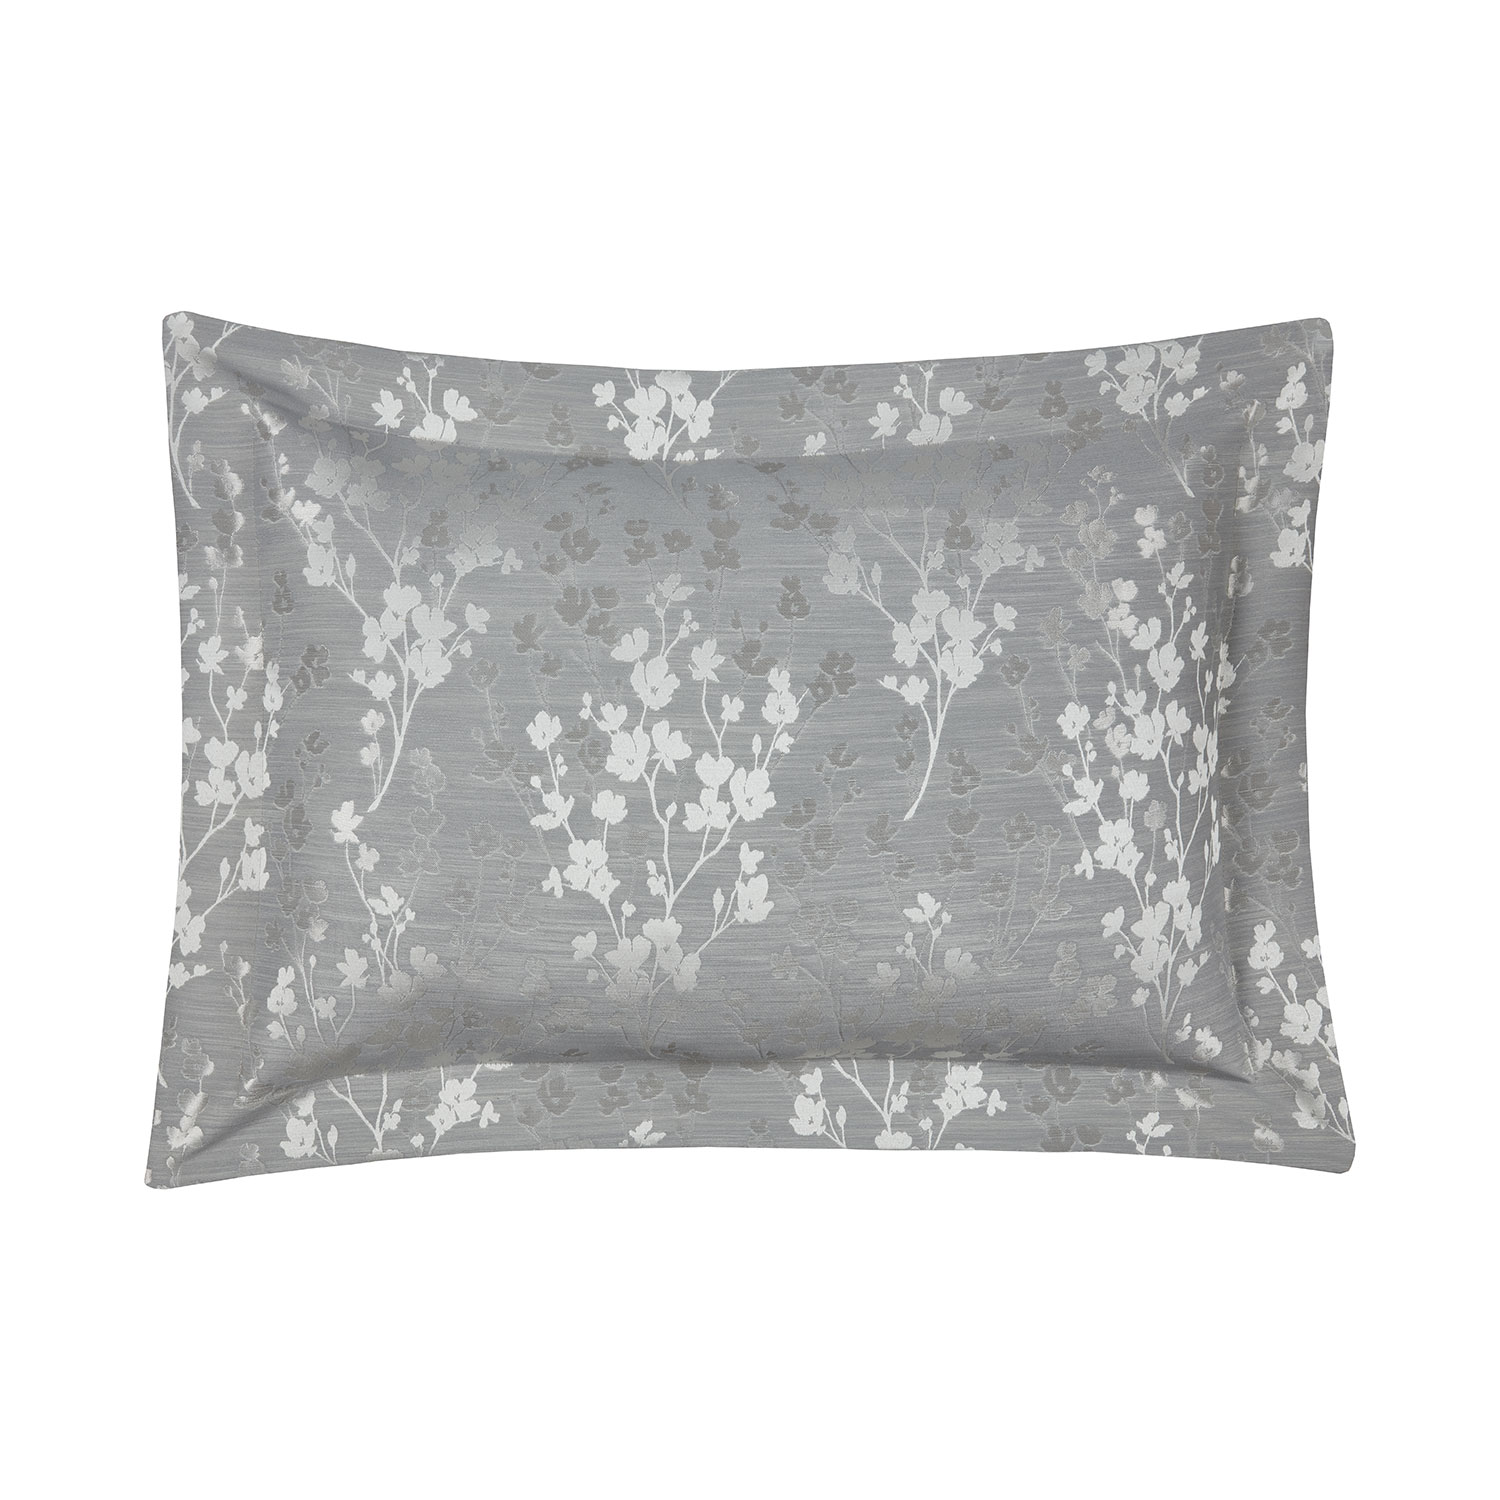 Blossom Silver Grey Floral Jacquard Oxford Pillowcases (Pair)